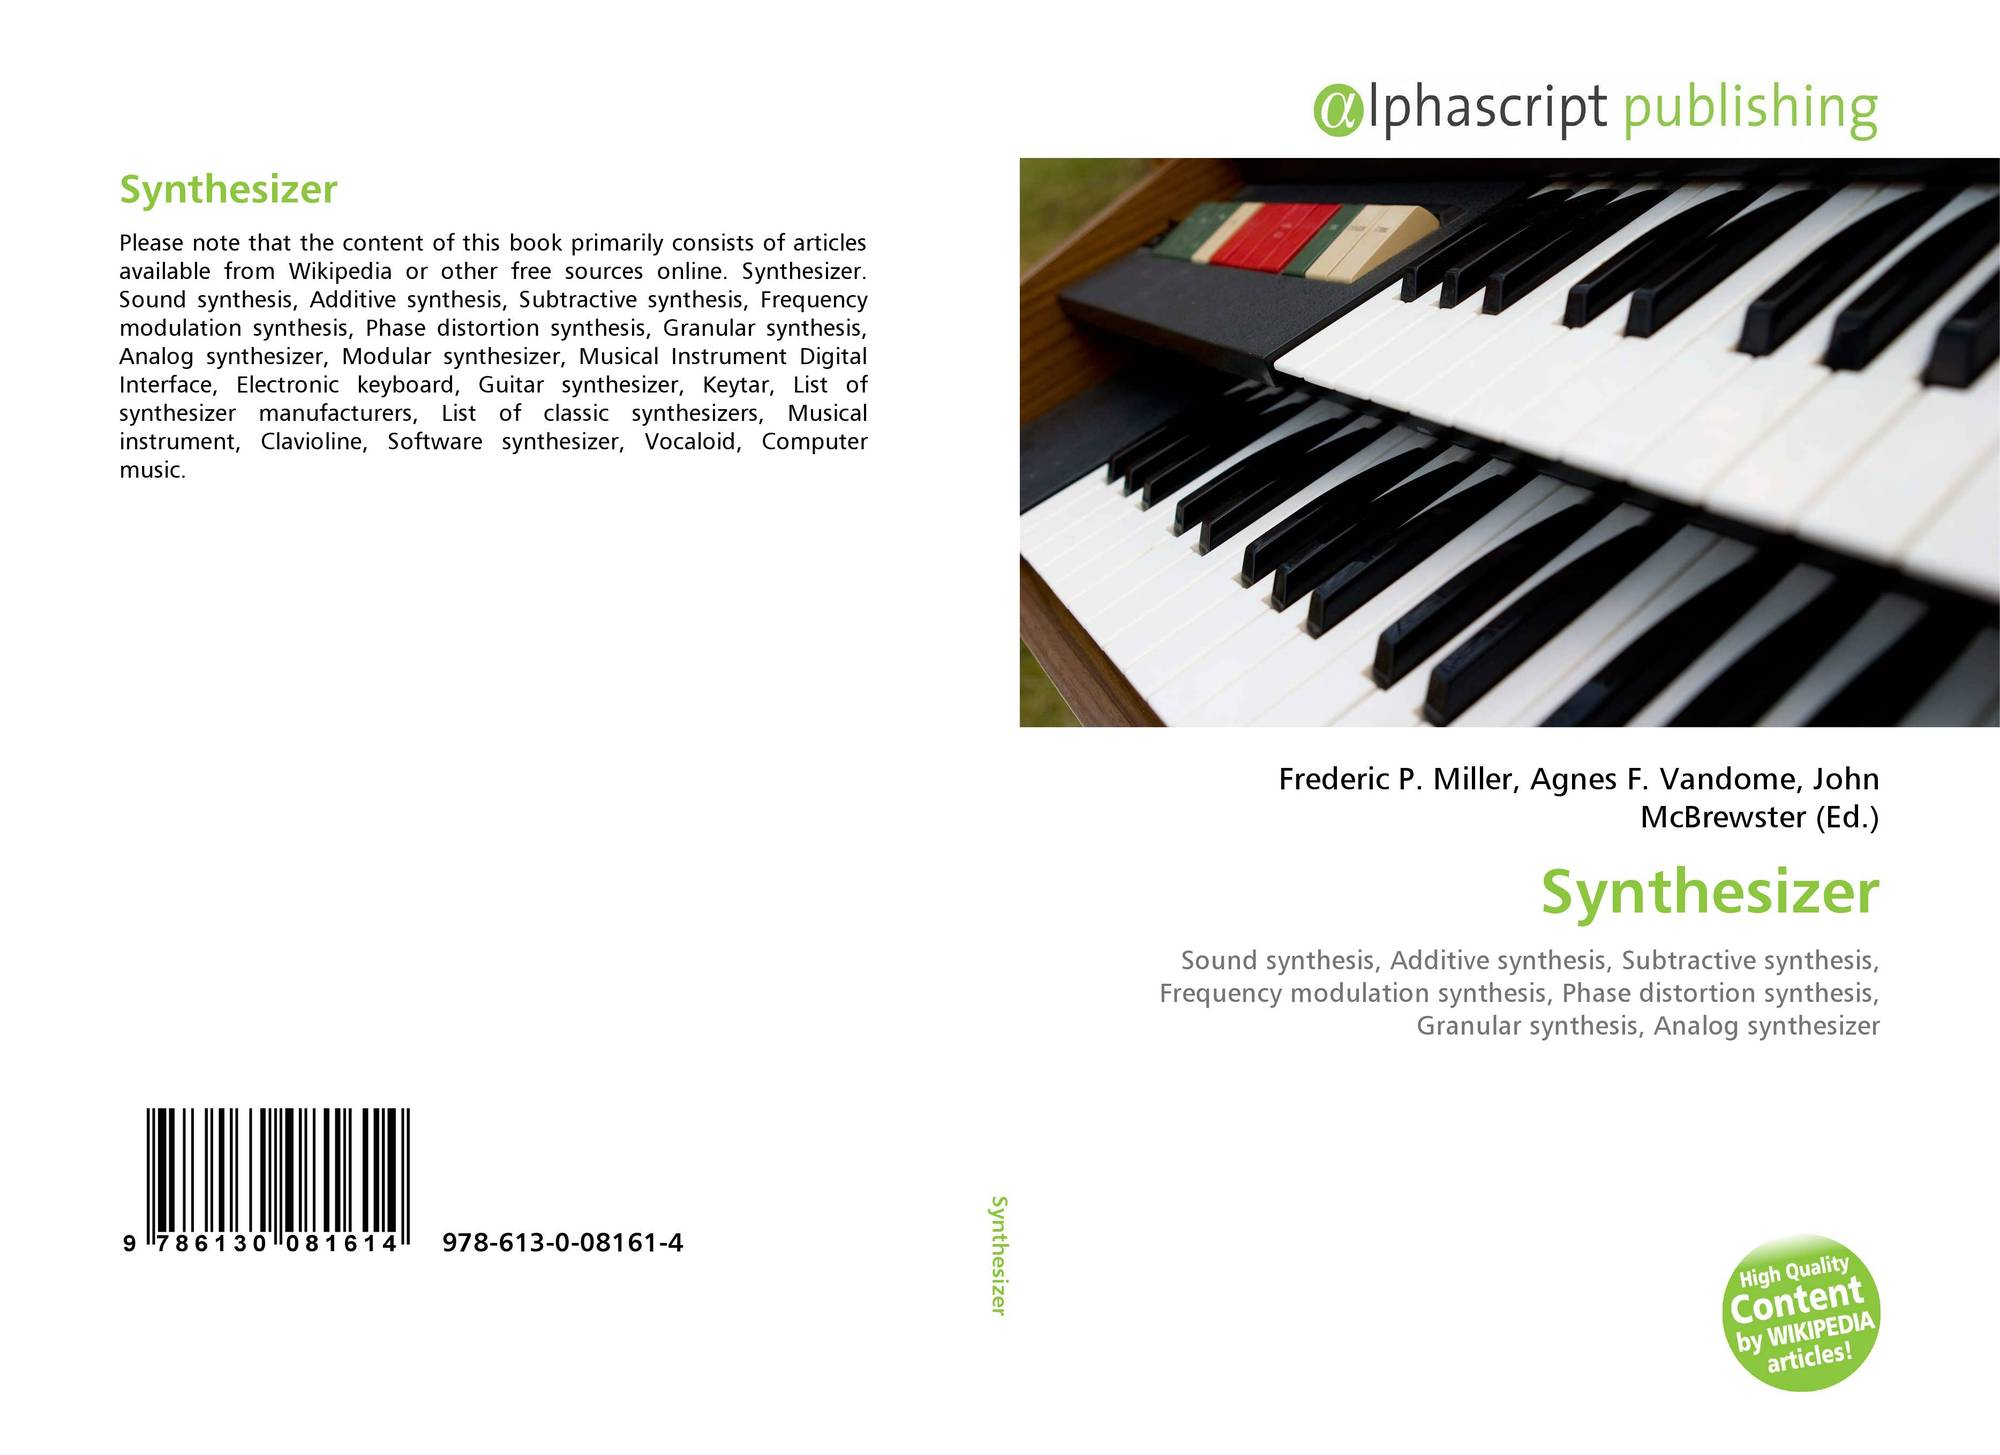 Search Results For Synthesizer Frequency Bookcover Of Omni Badge 9307e2201e5f762643a64561af3456be64a87707602f96b92ef18a9bbcada116